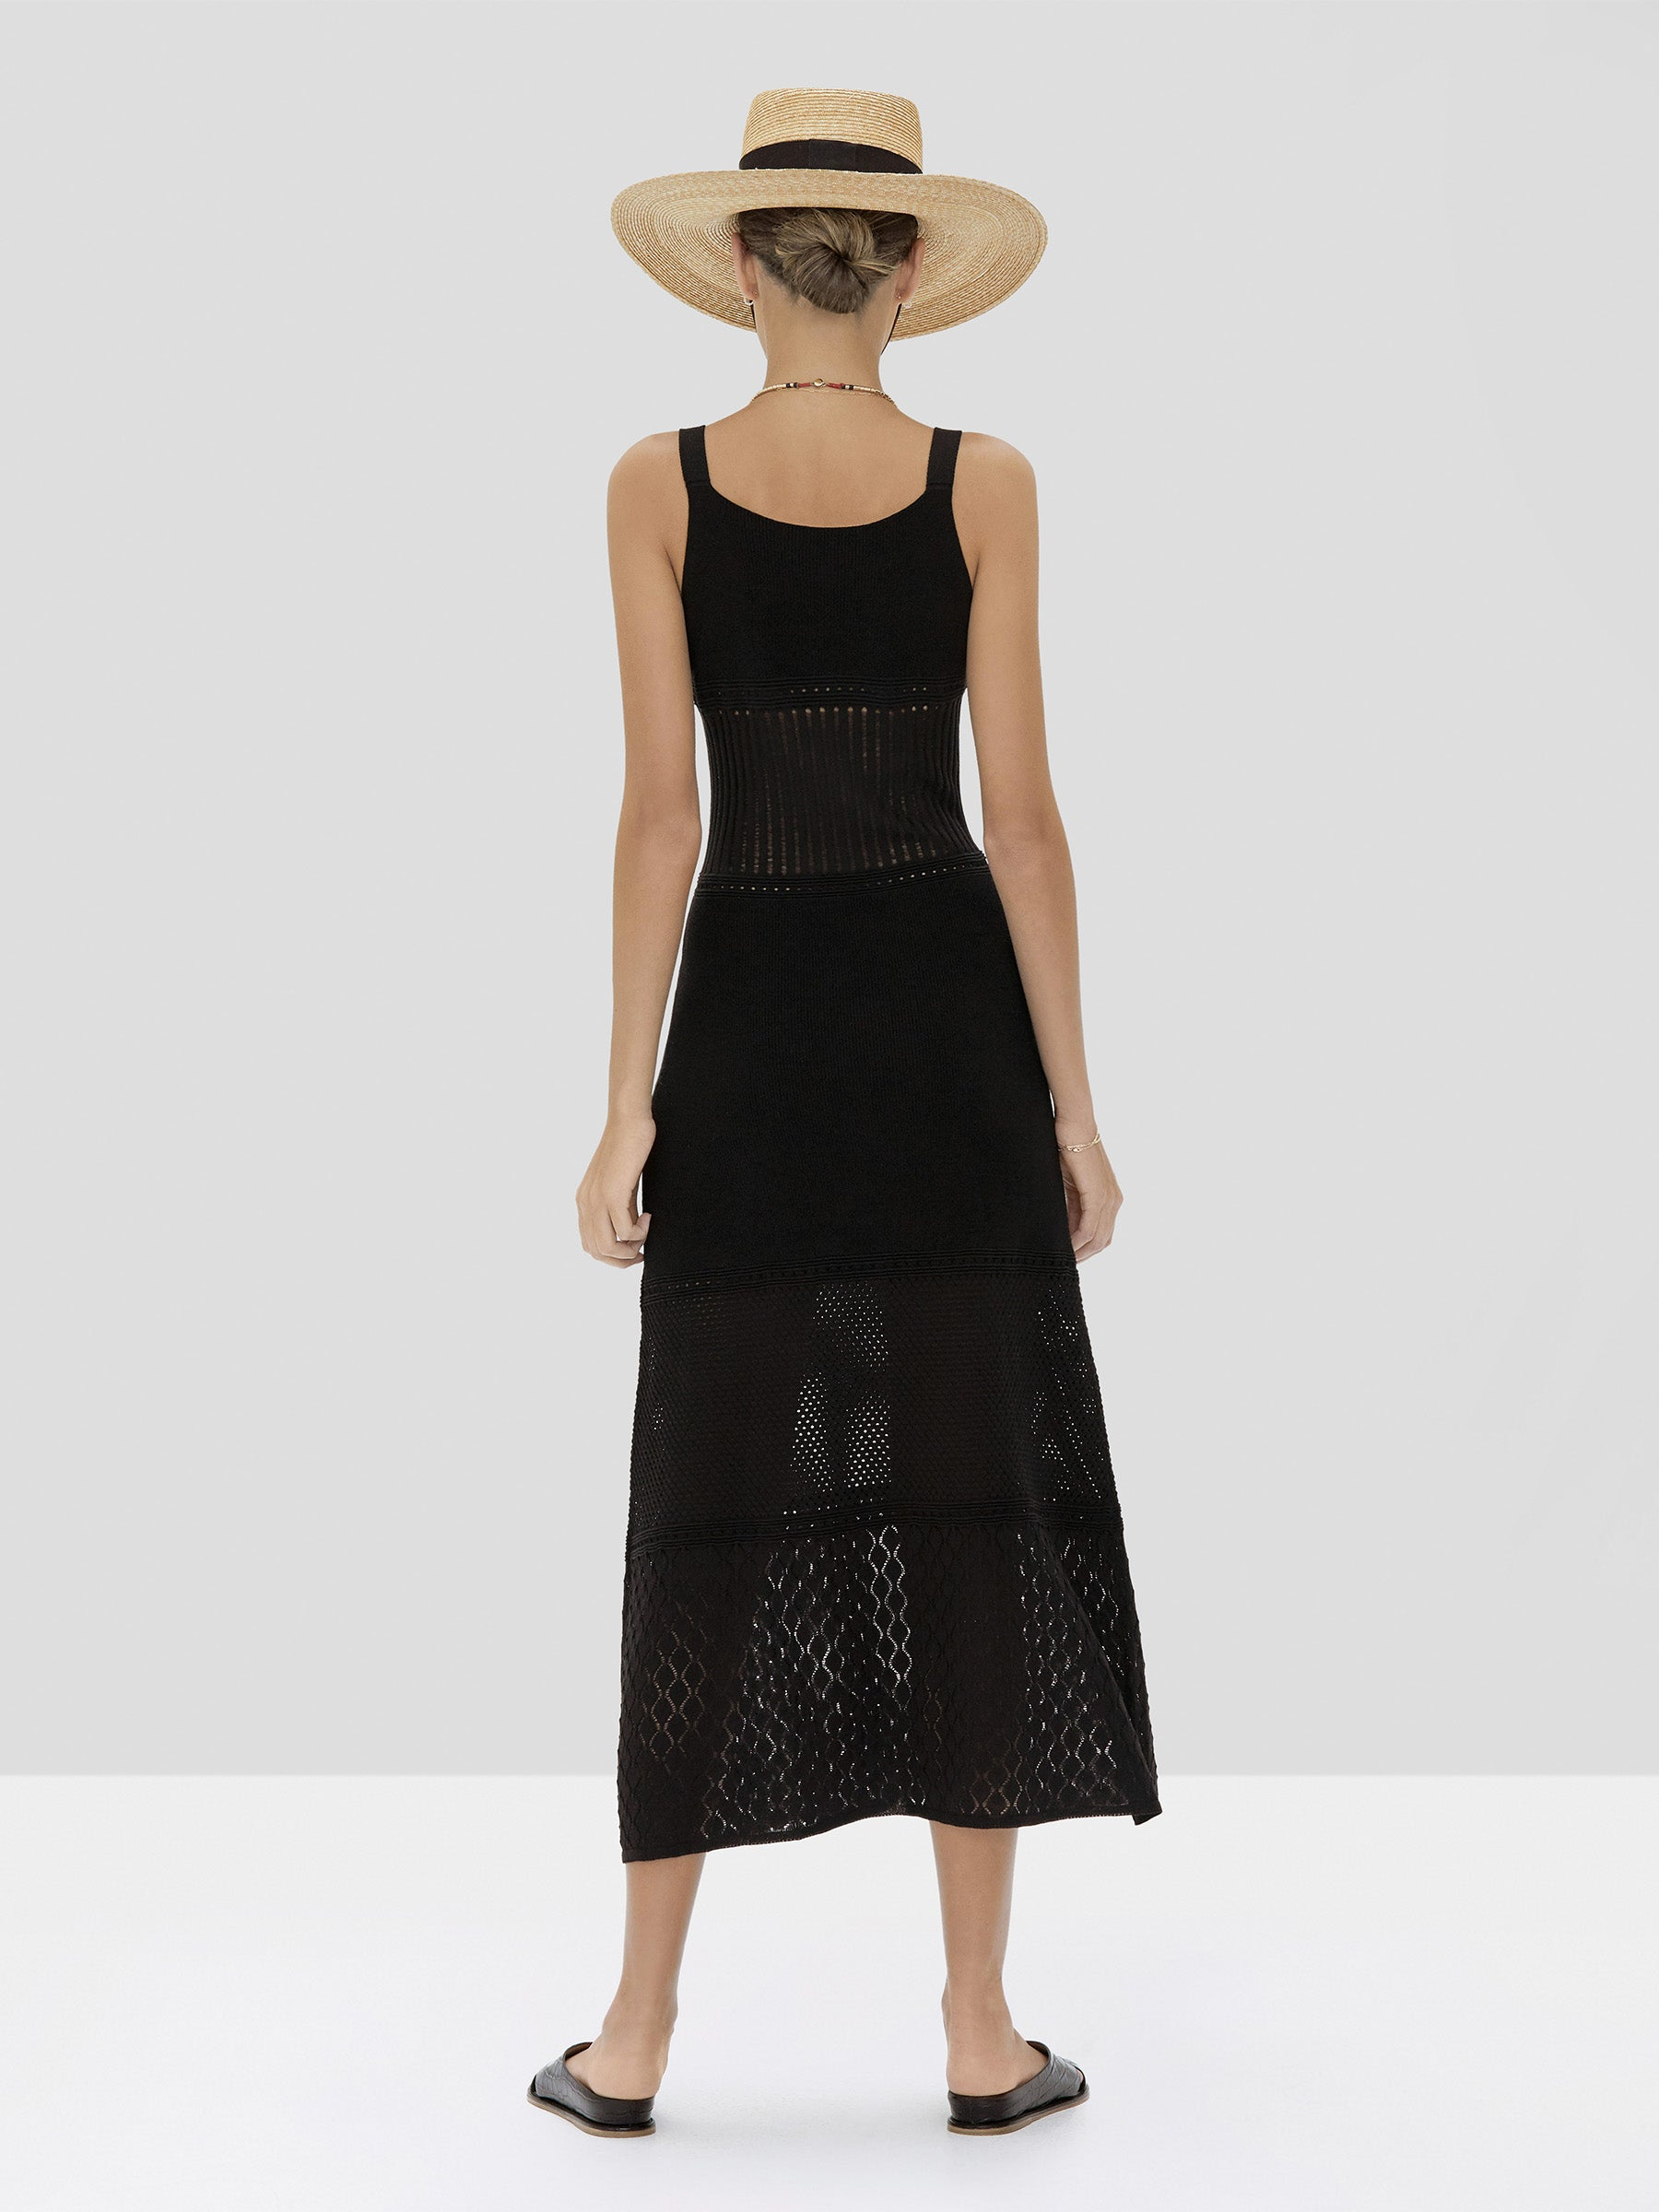 Alexis Rozanna Dress in Black from Spring Summer 2020 - Rear View